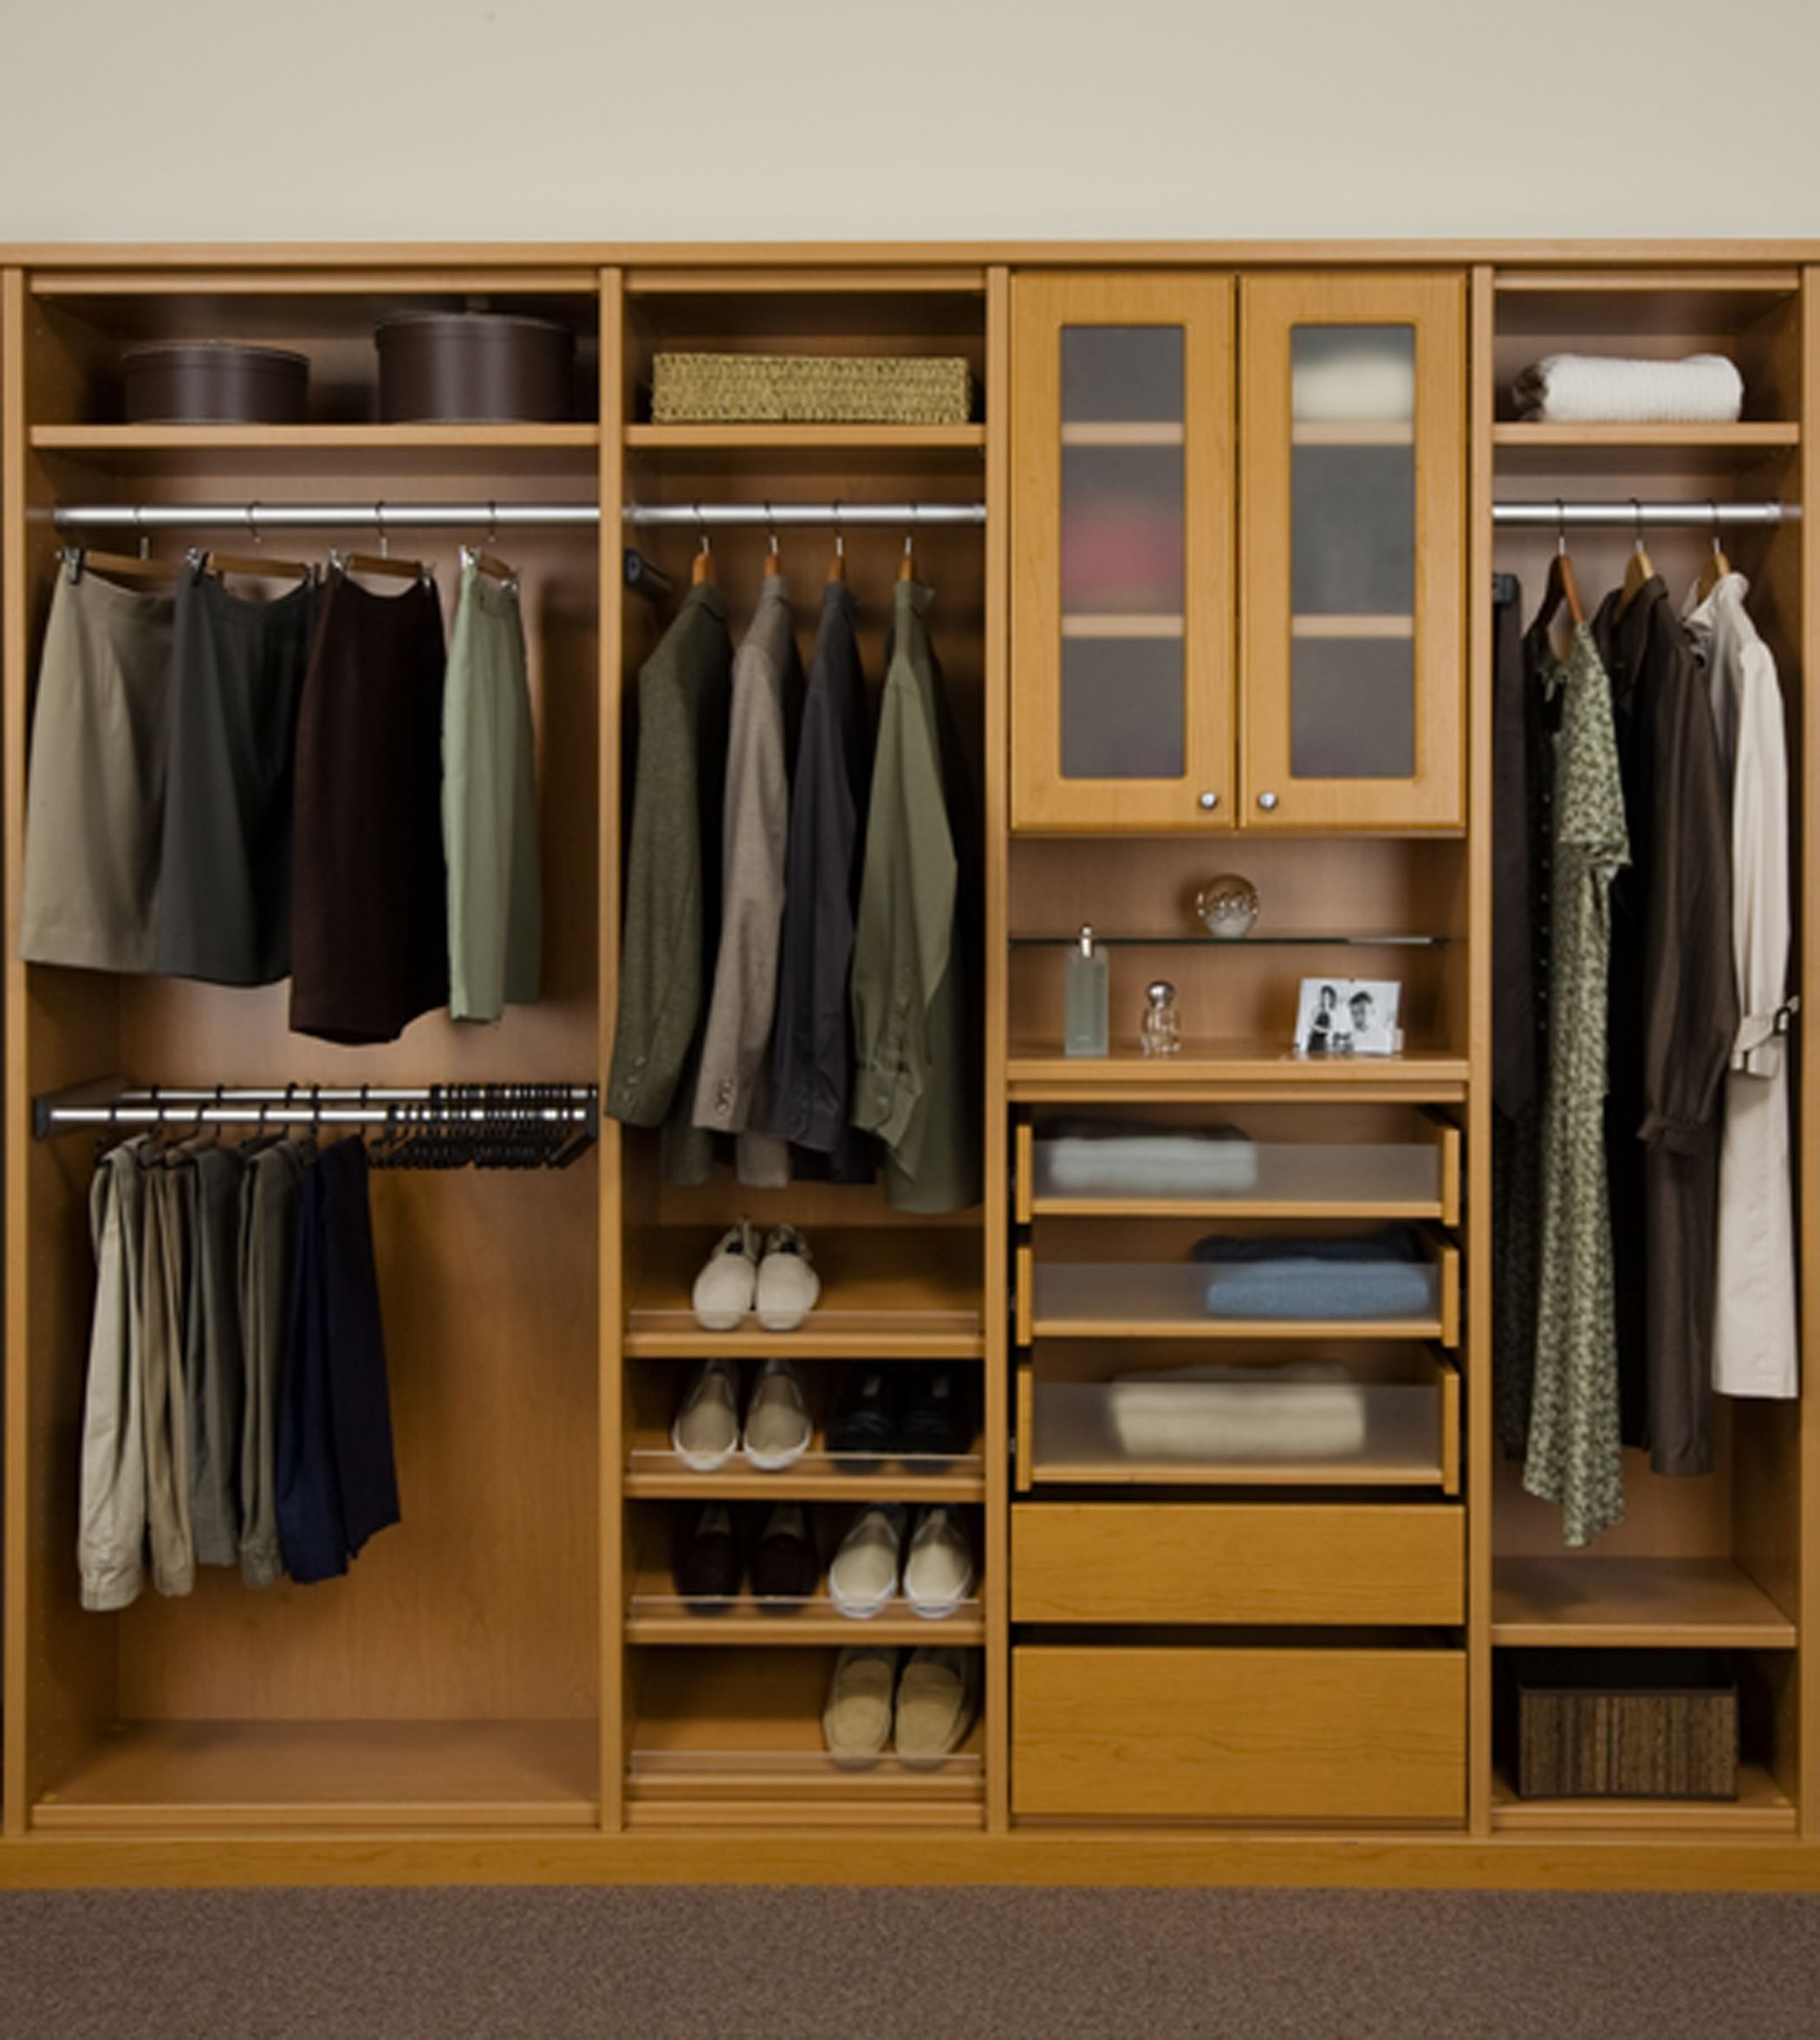 Tidy Closet Organizer Ideas with Wooden Shelves and Cabinets near Metal Clothes Hangers